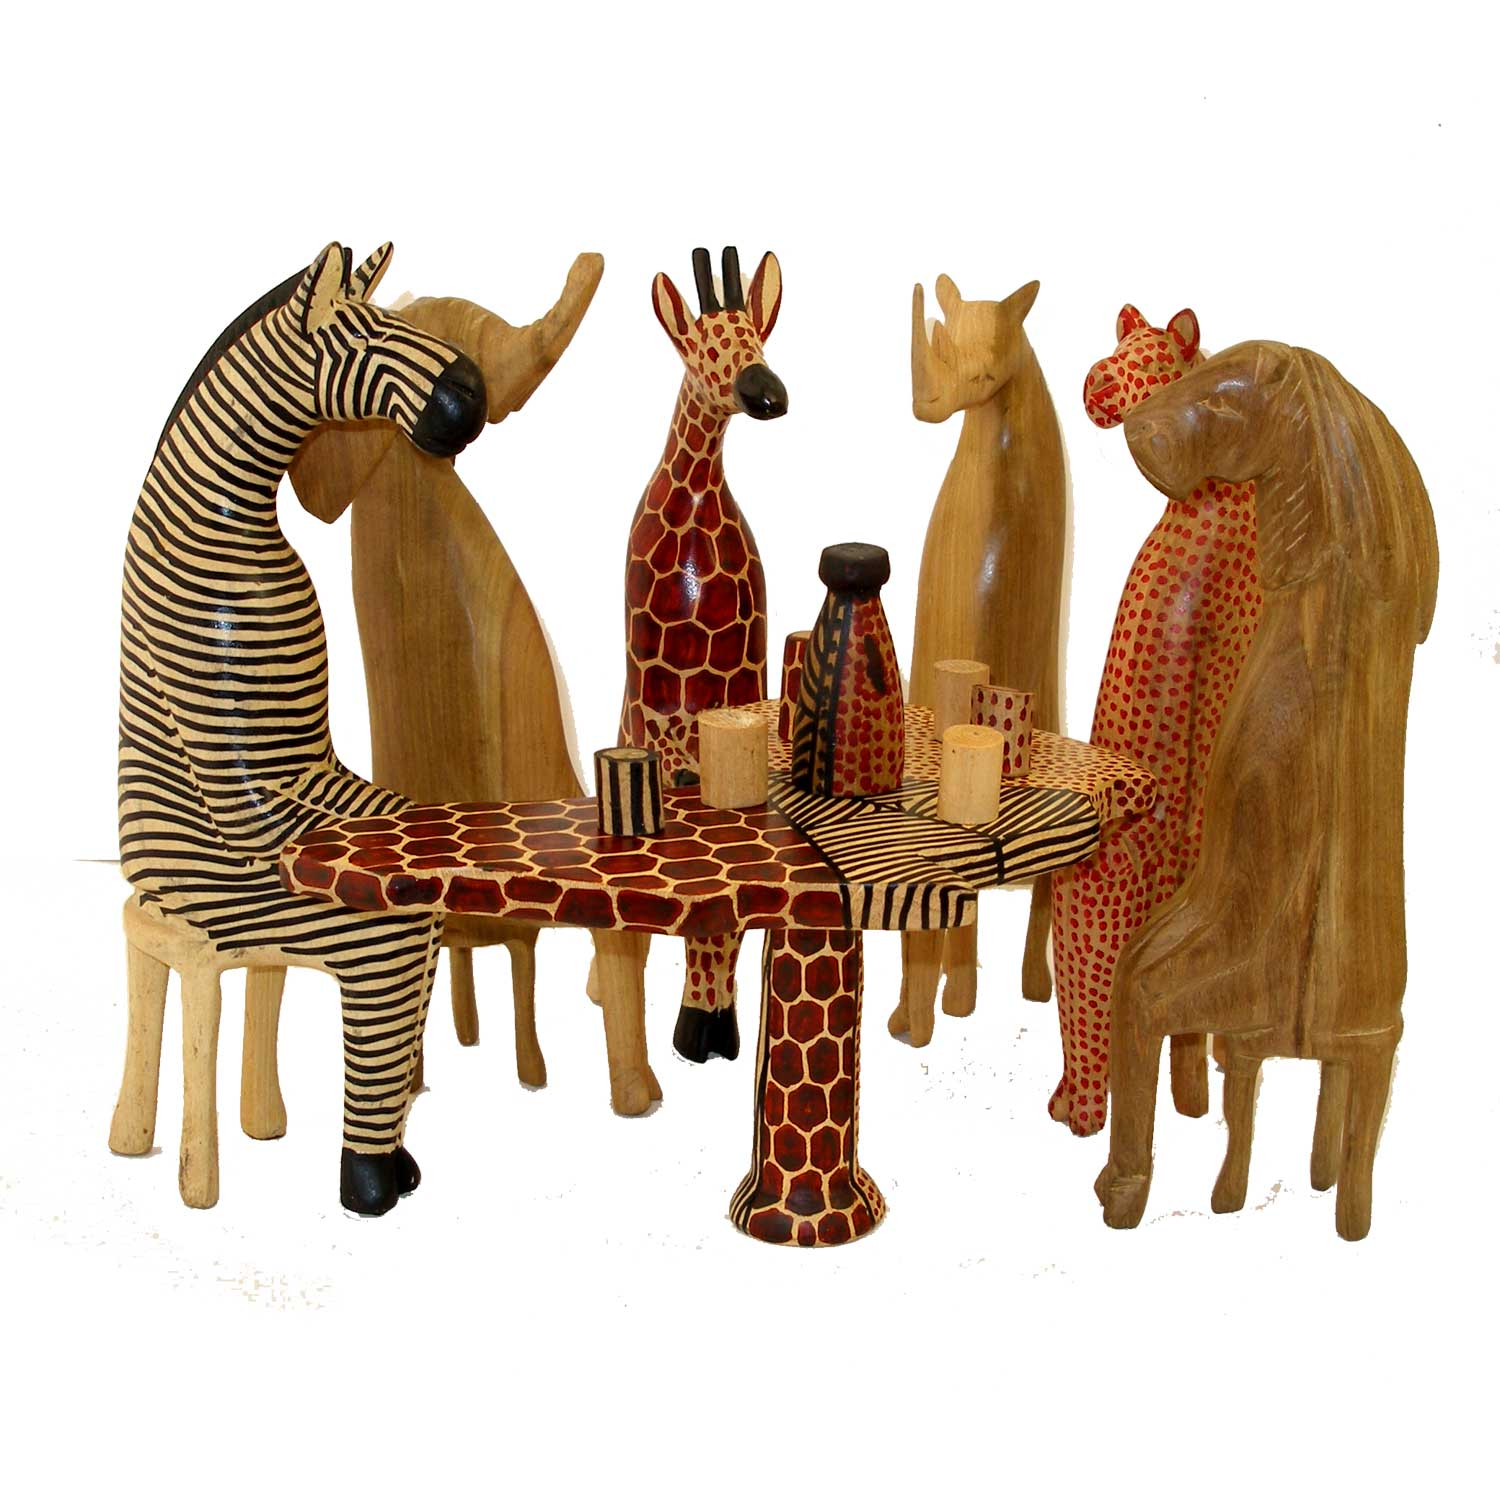 Jedando handicrafts party animal set roost and galley